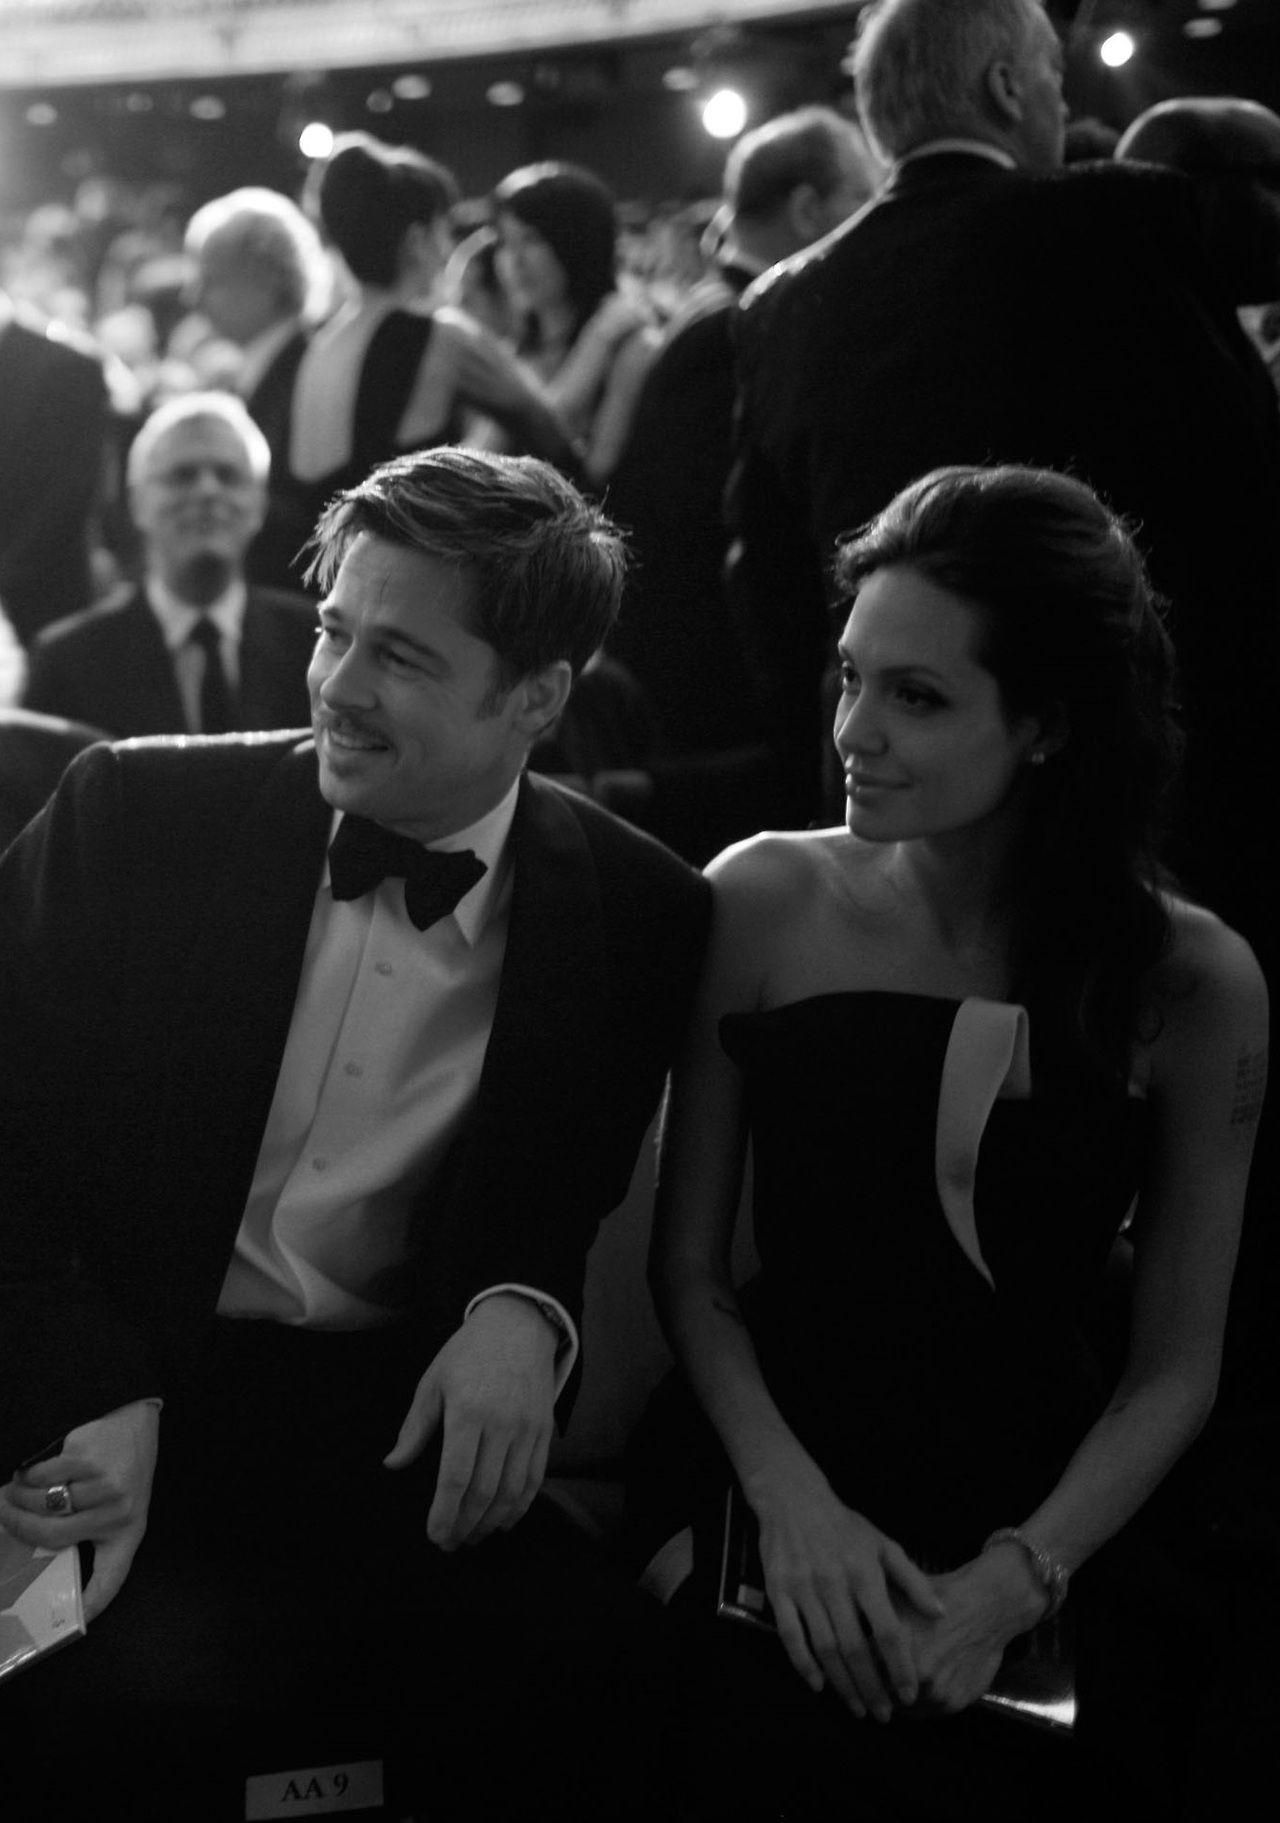 Pin by Kylie K on Things I Love Brad and angelina, Brad